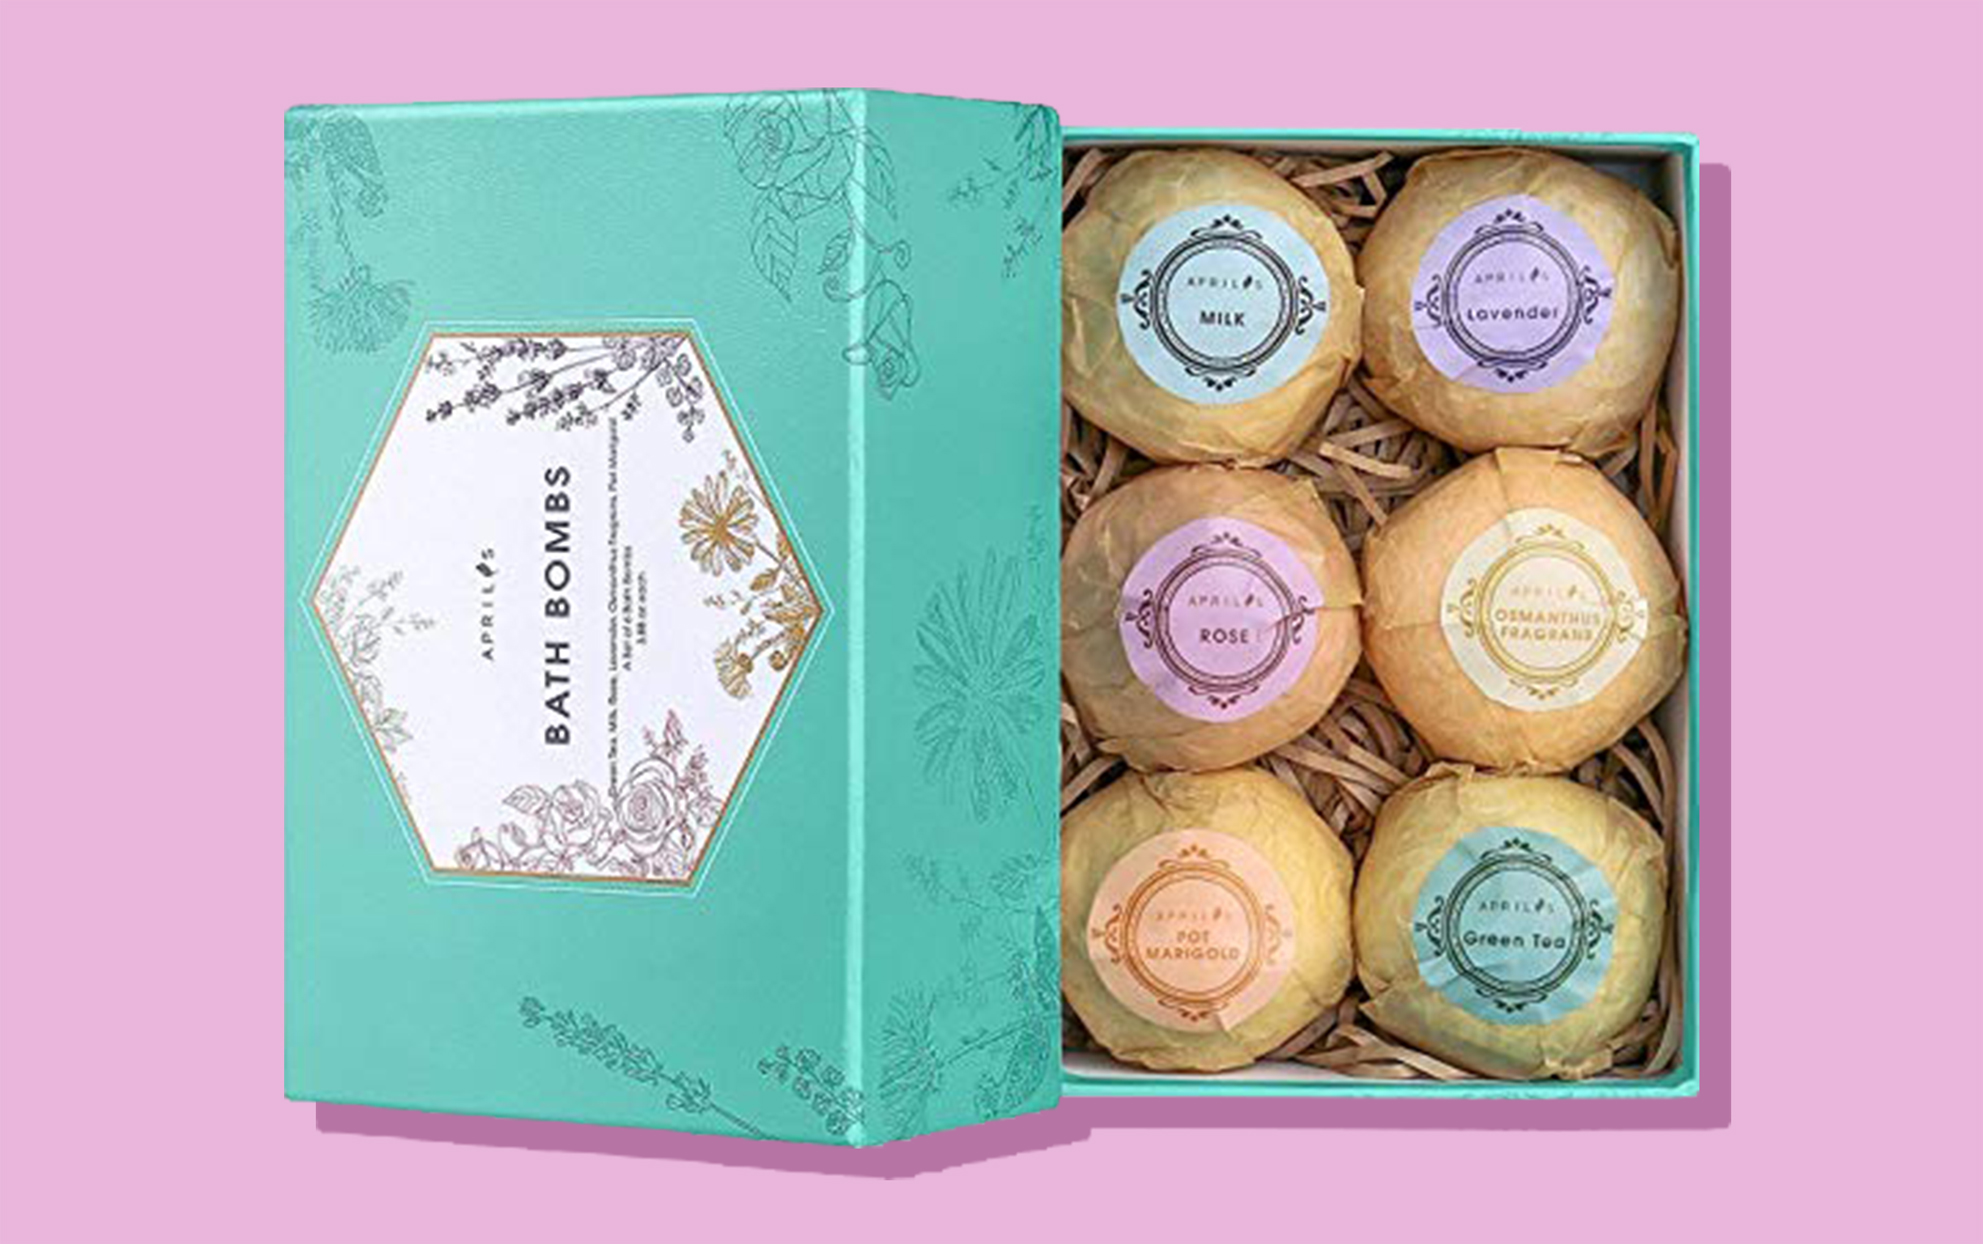 A box of Bath Bombs on a lavender background